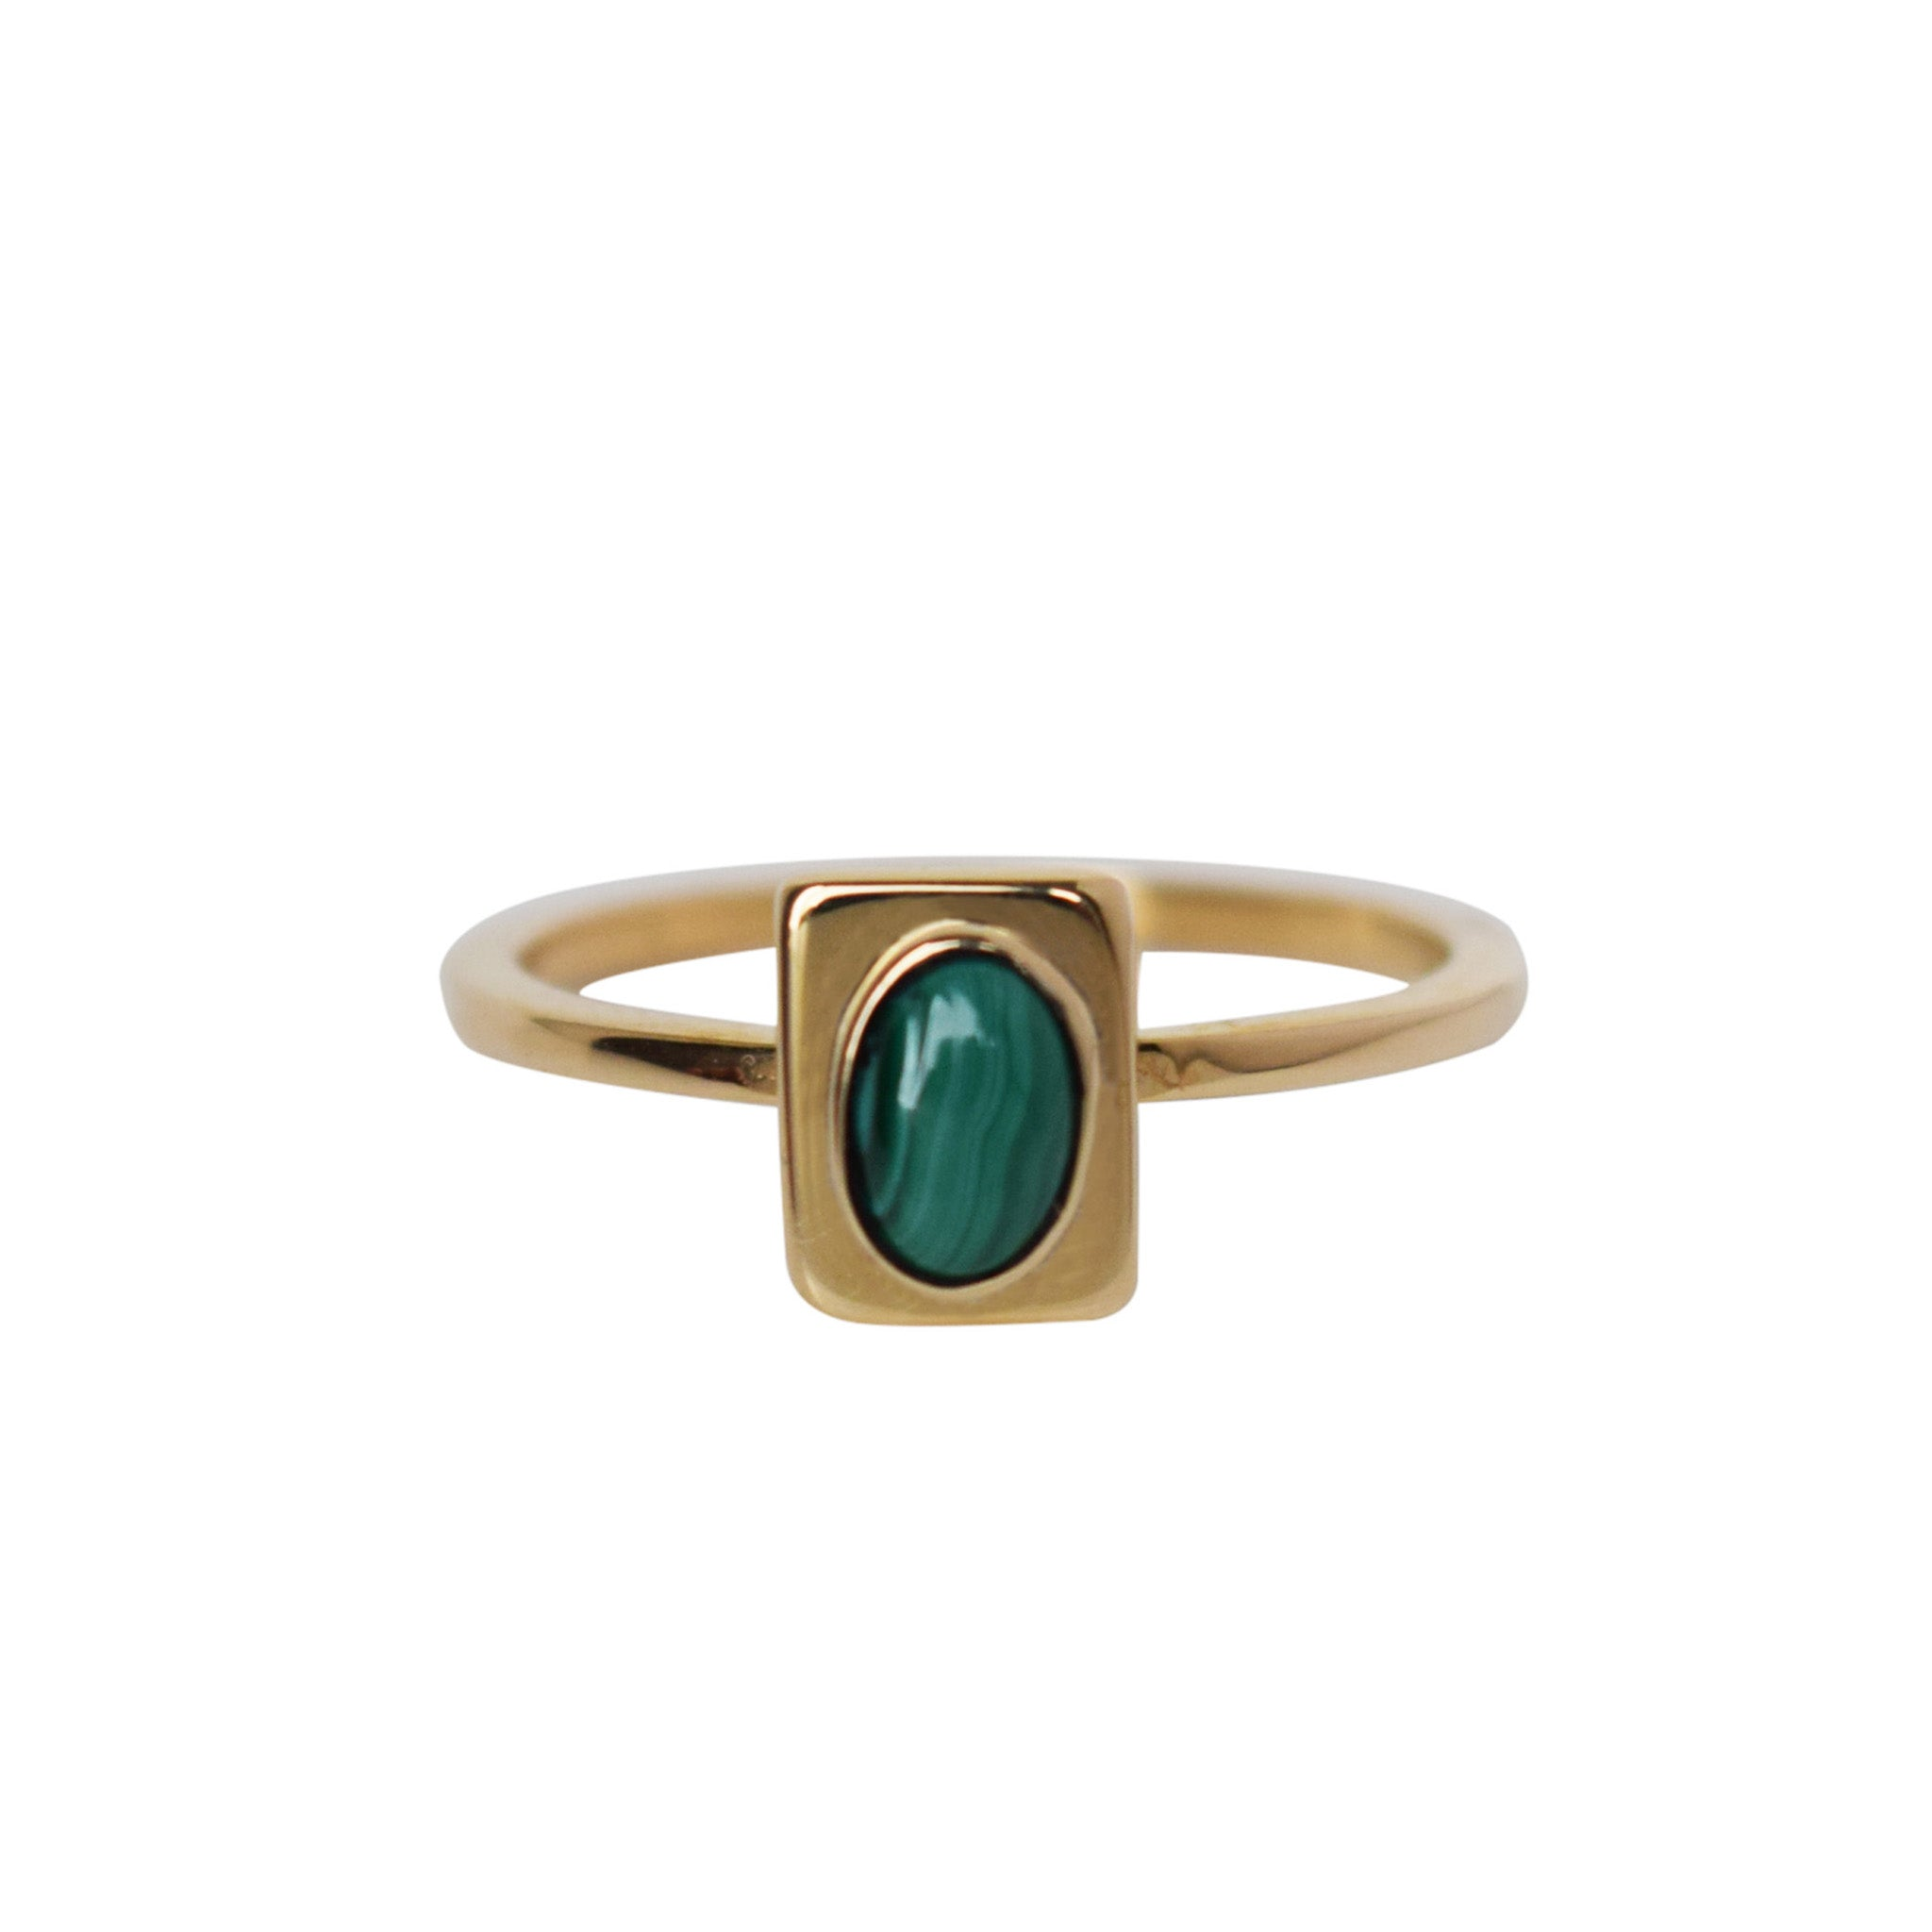 Stone Portrait Stacking Ring - Lissa Bowie